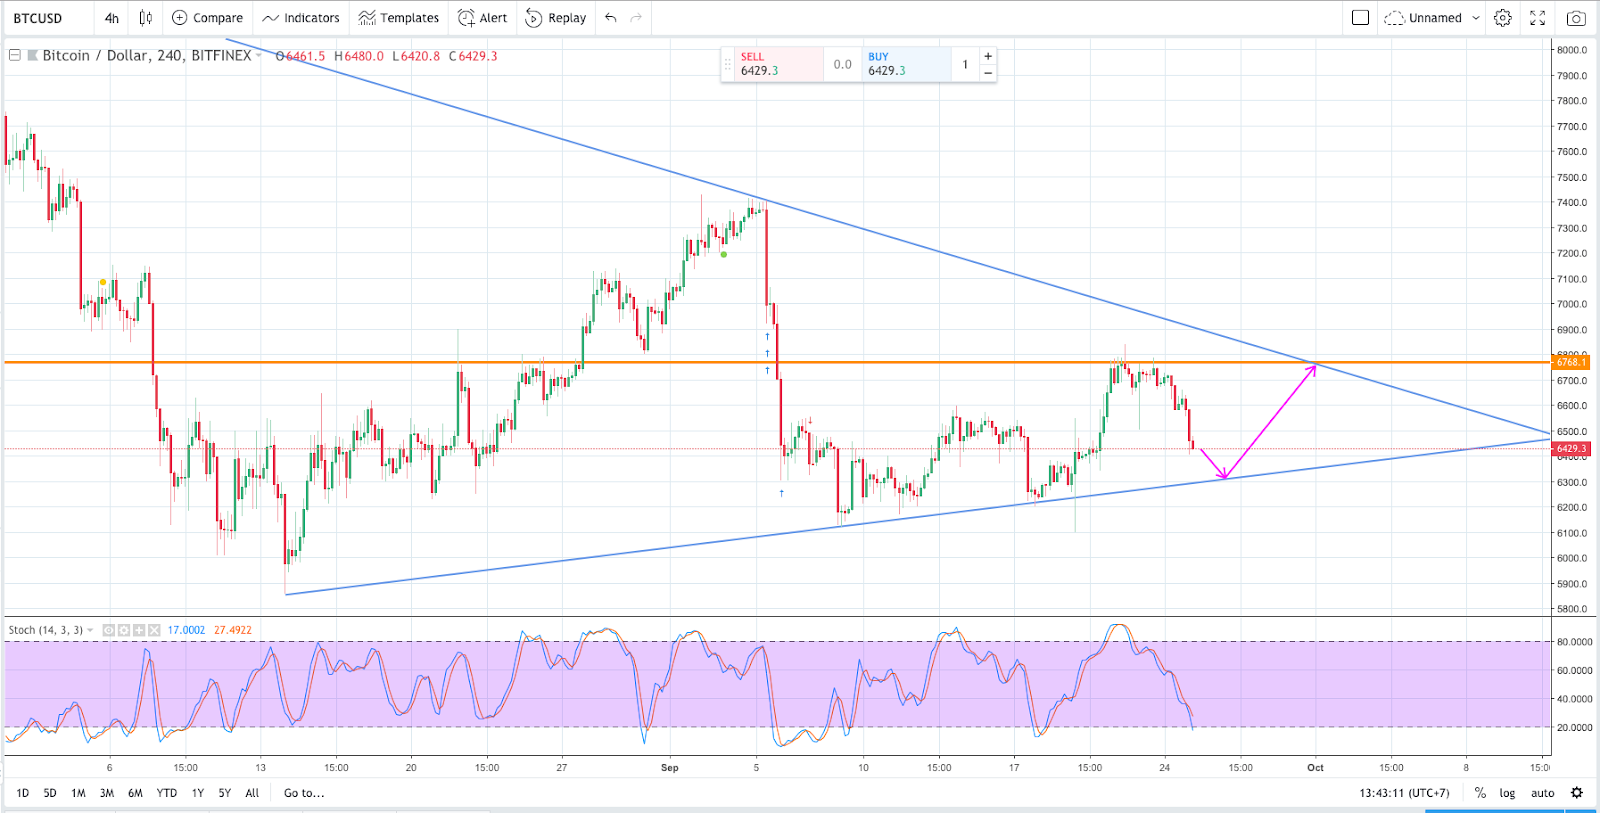 bitcoin, btc, BTCUSD, ADX, Stochastic, convergence triangle